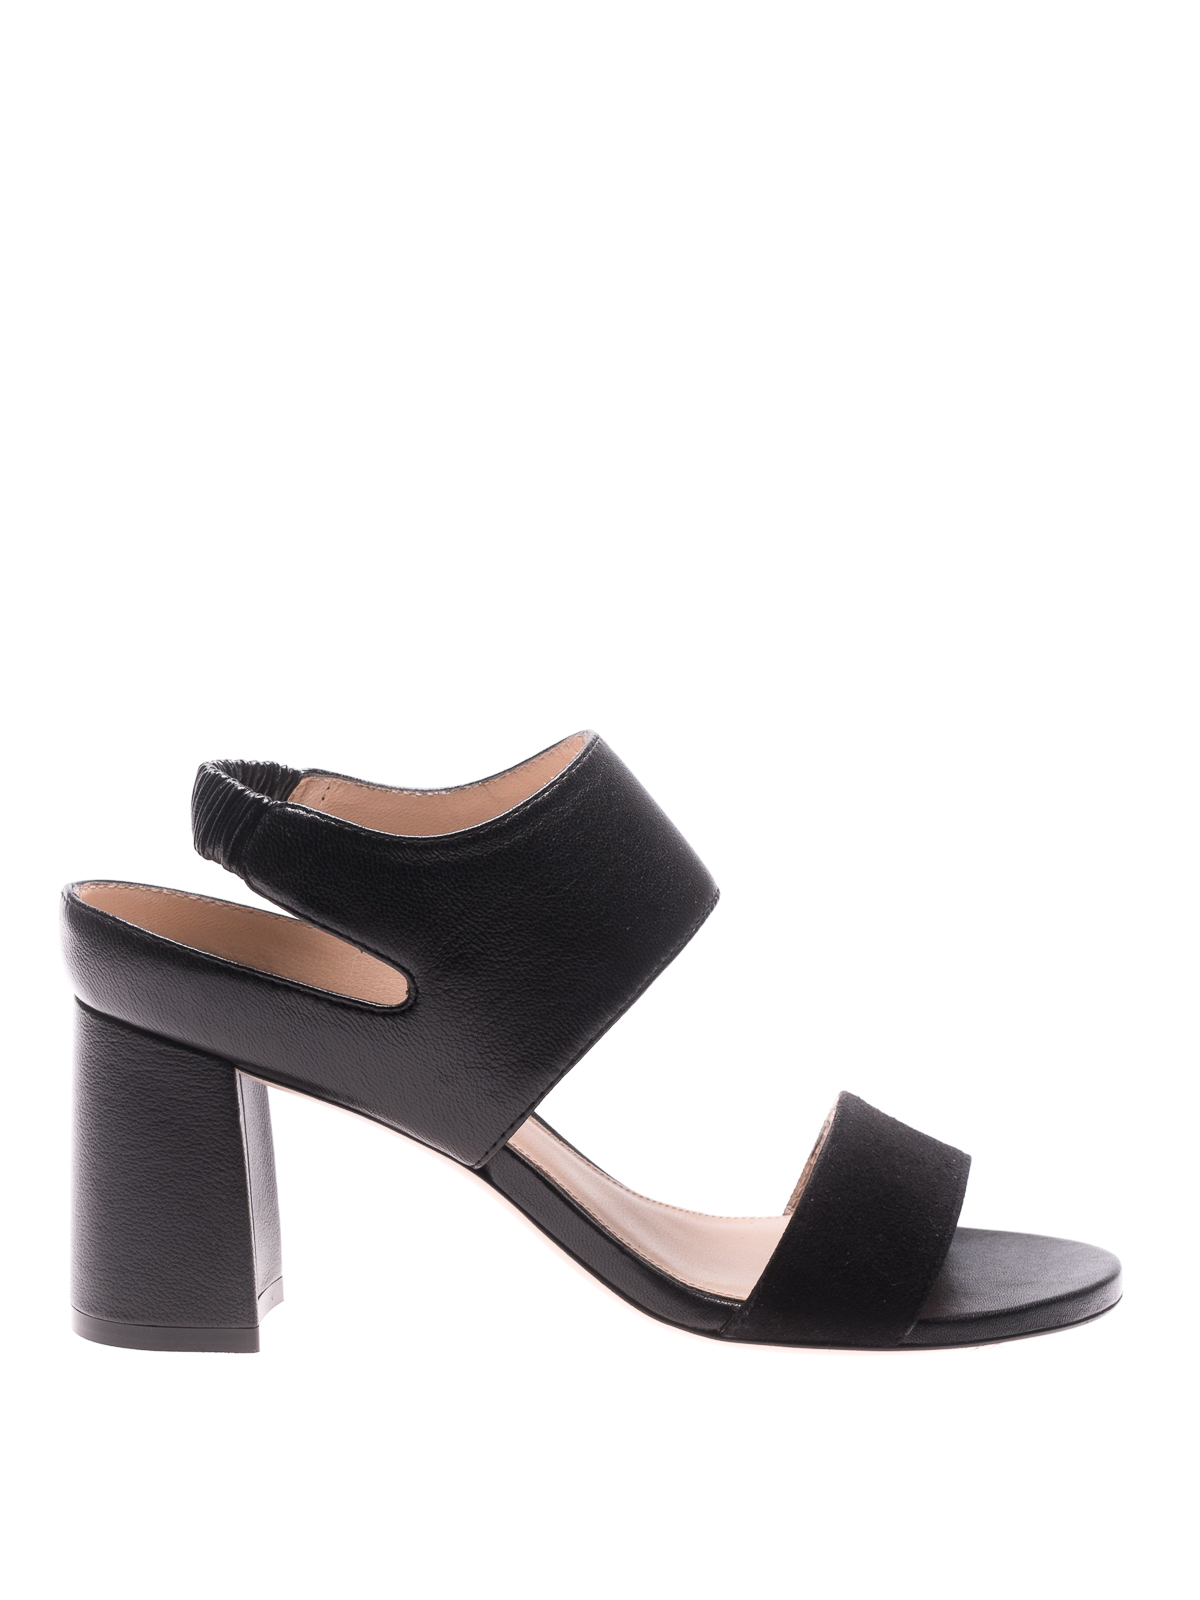 2fef4ddefe0 Stuart Weitzman - Erica suede and leather sandals - sandals - XL14739